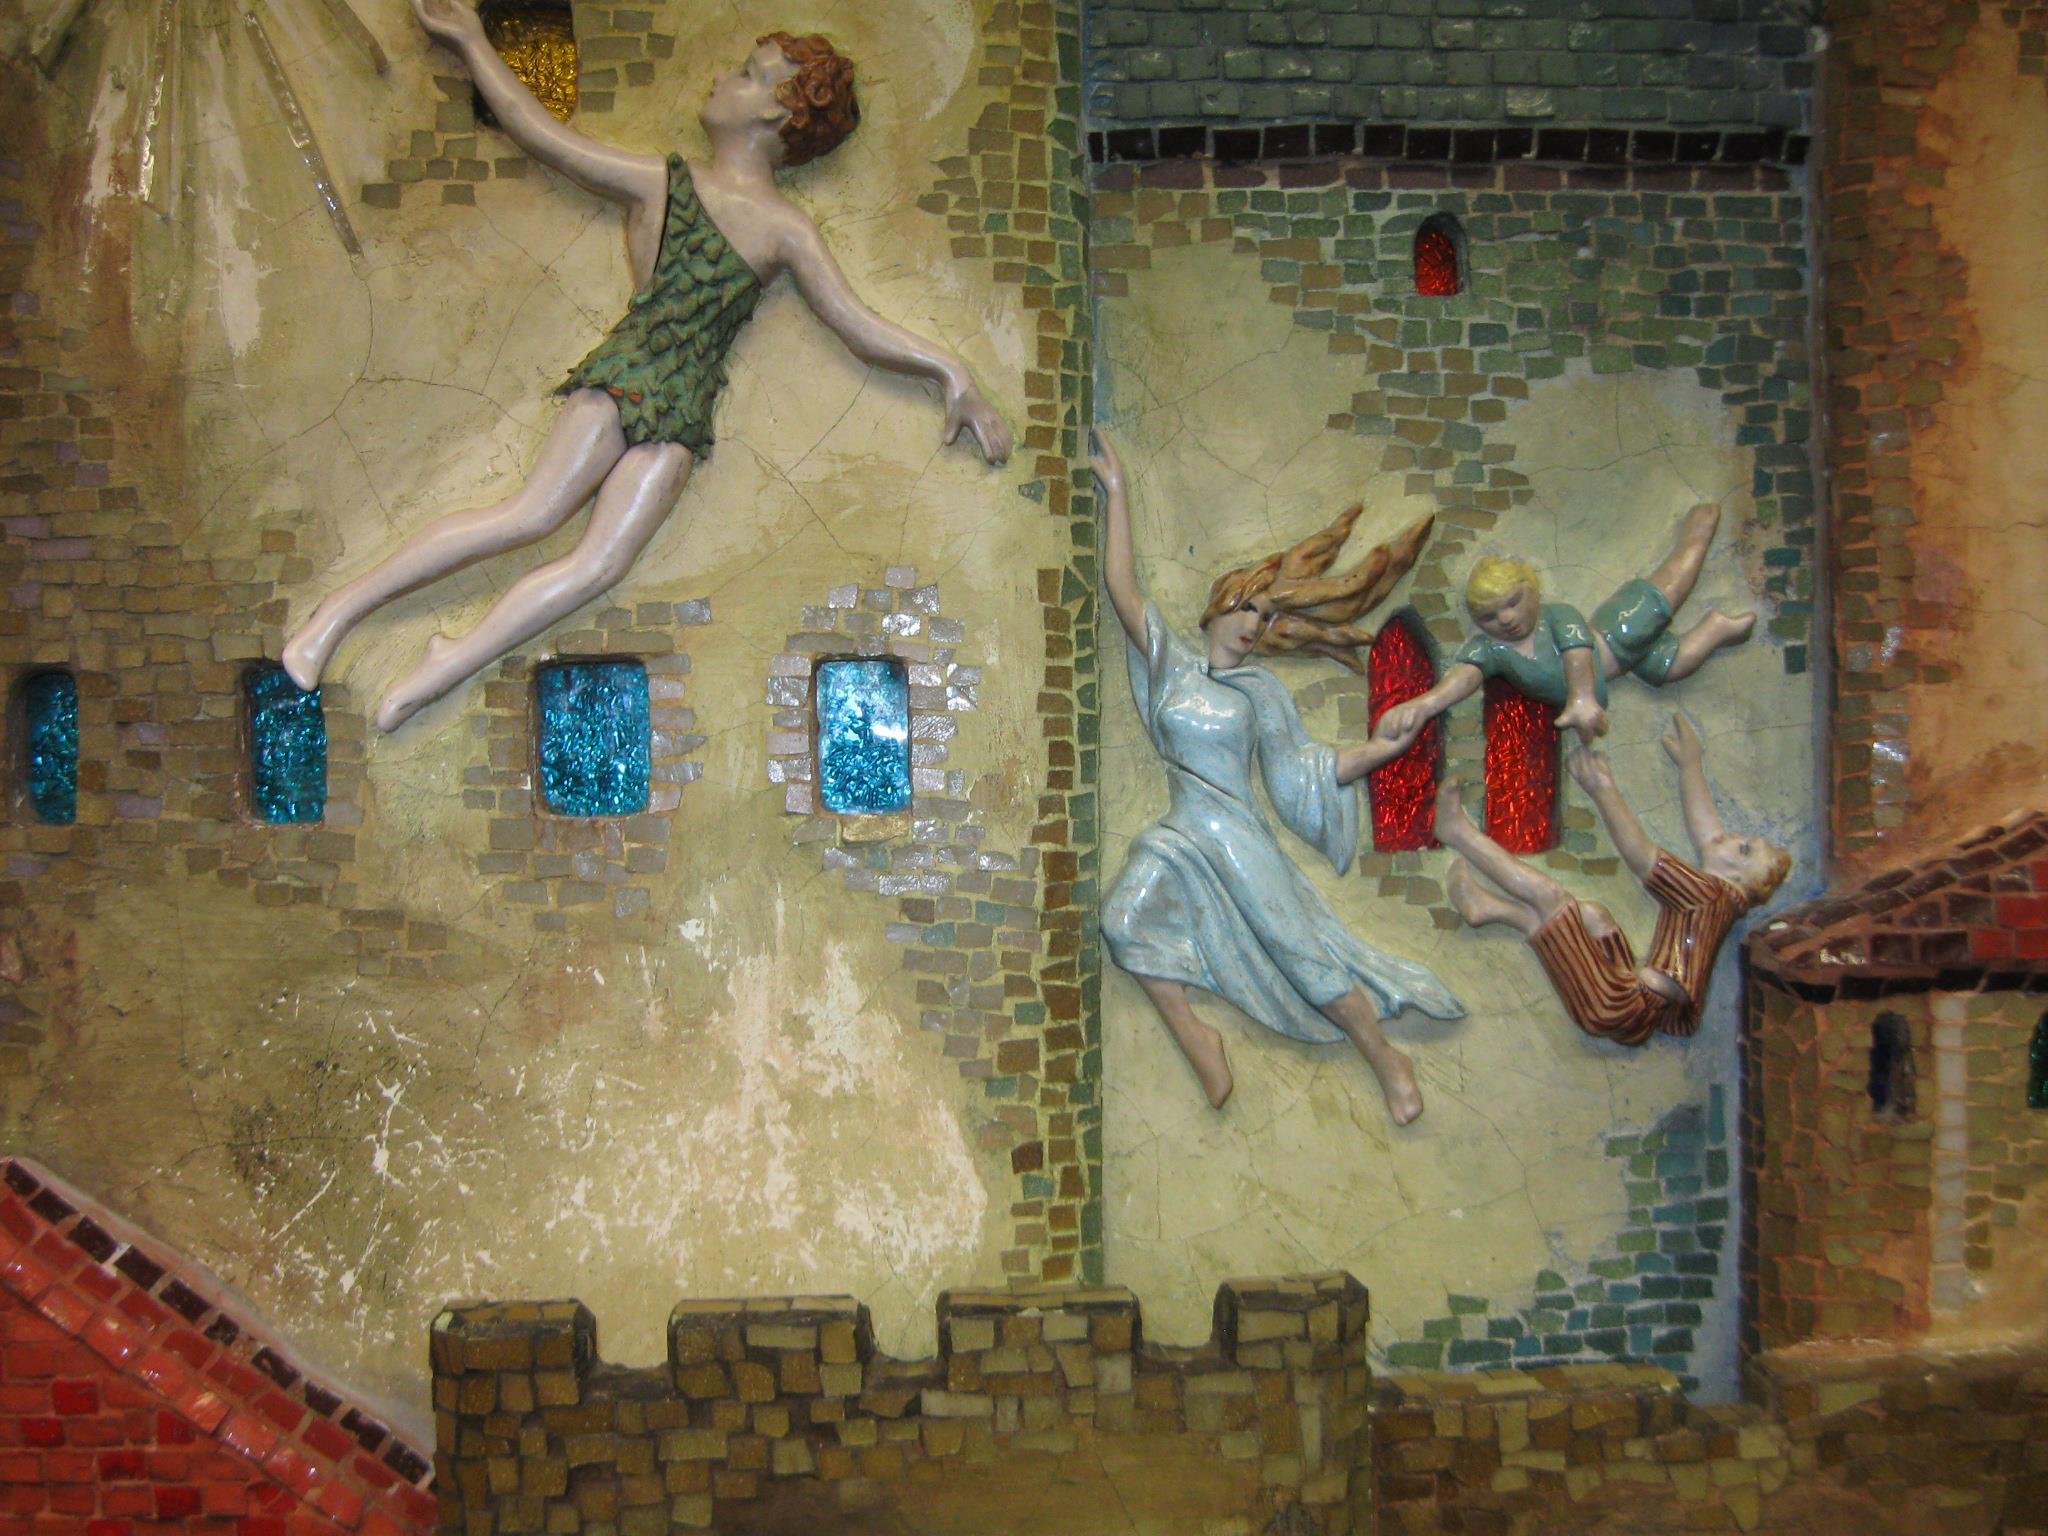 Storybook Castle, Josephine Mather Aull, ceramic mural detail.